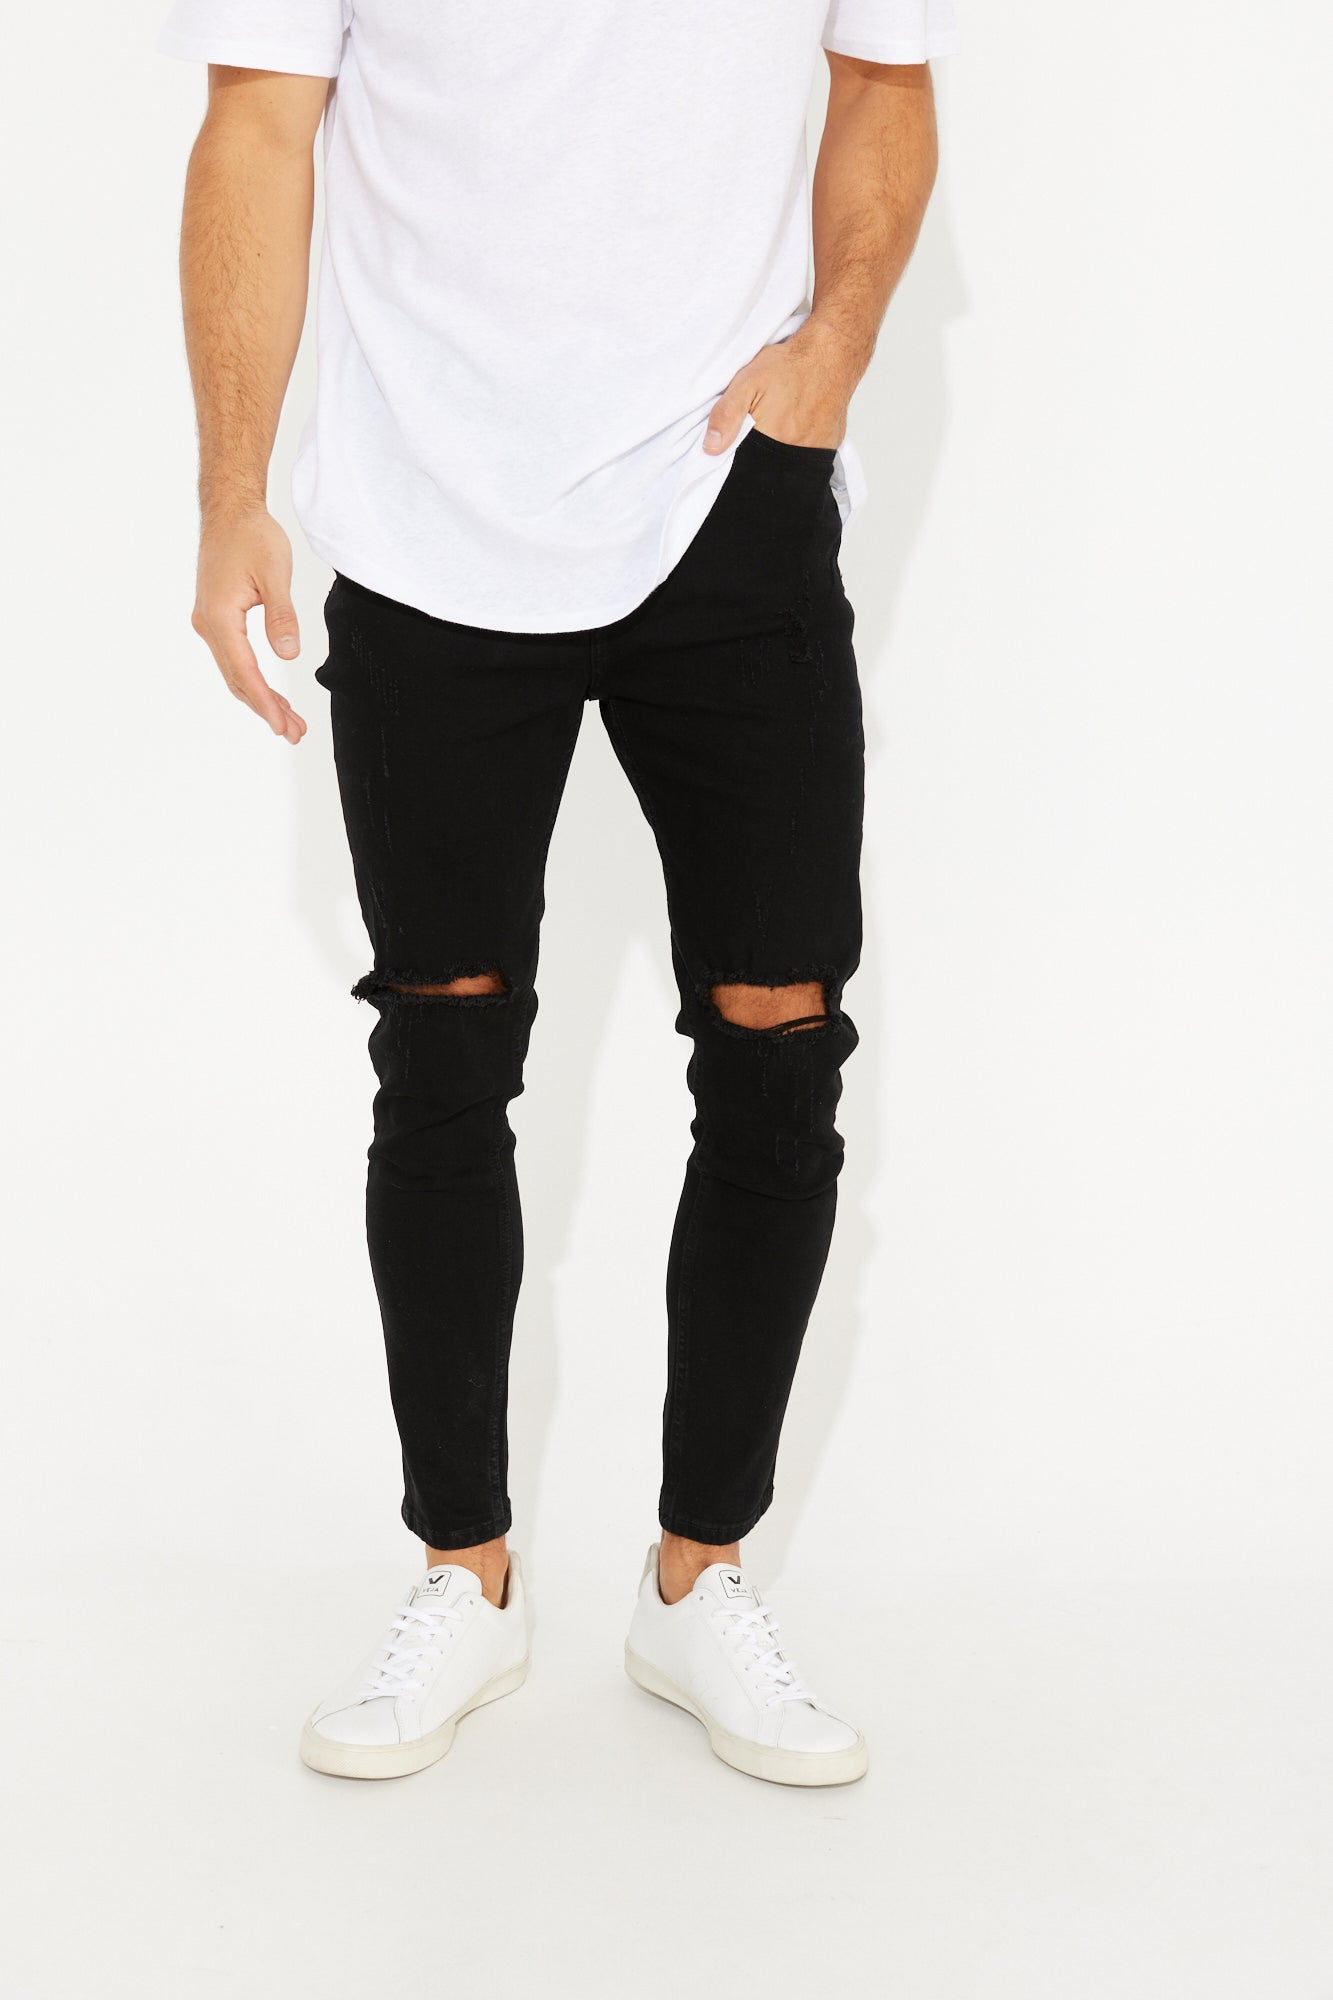 Nth Distressed Denim Solid Black